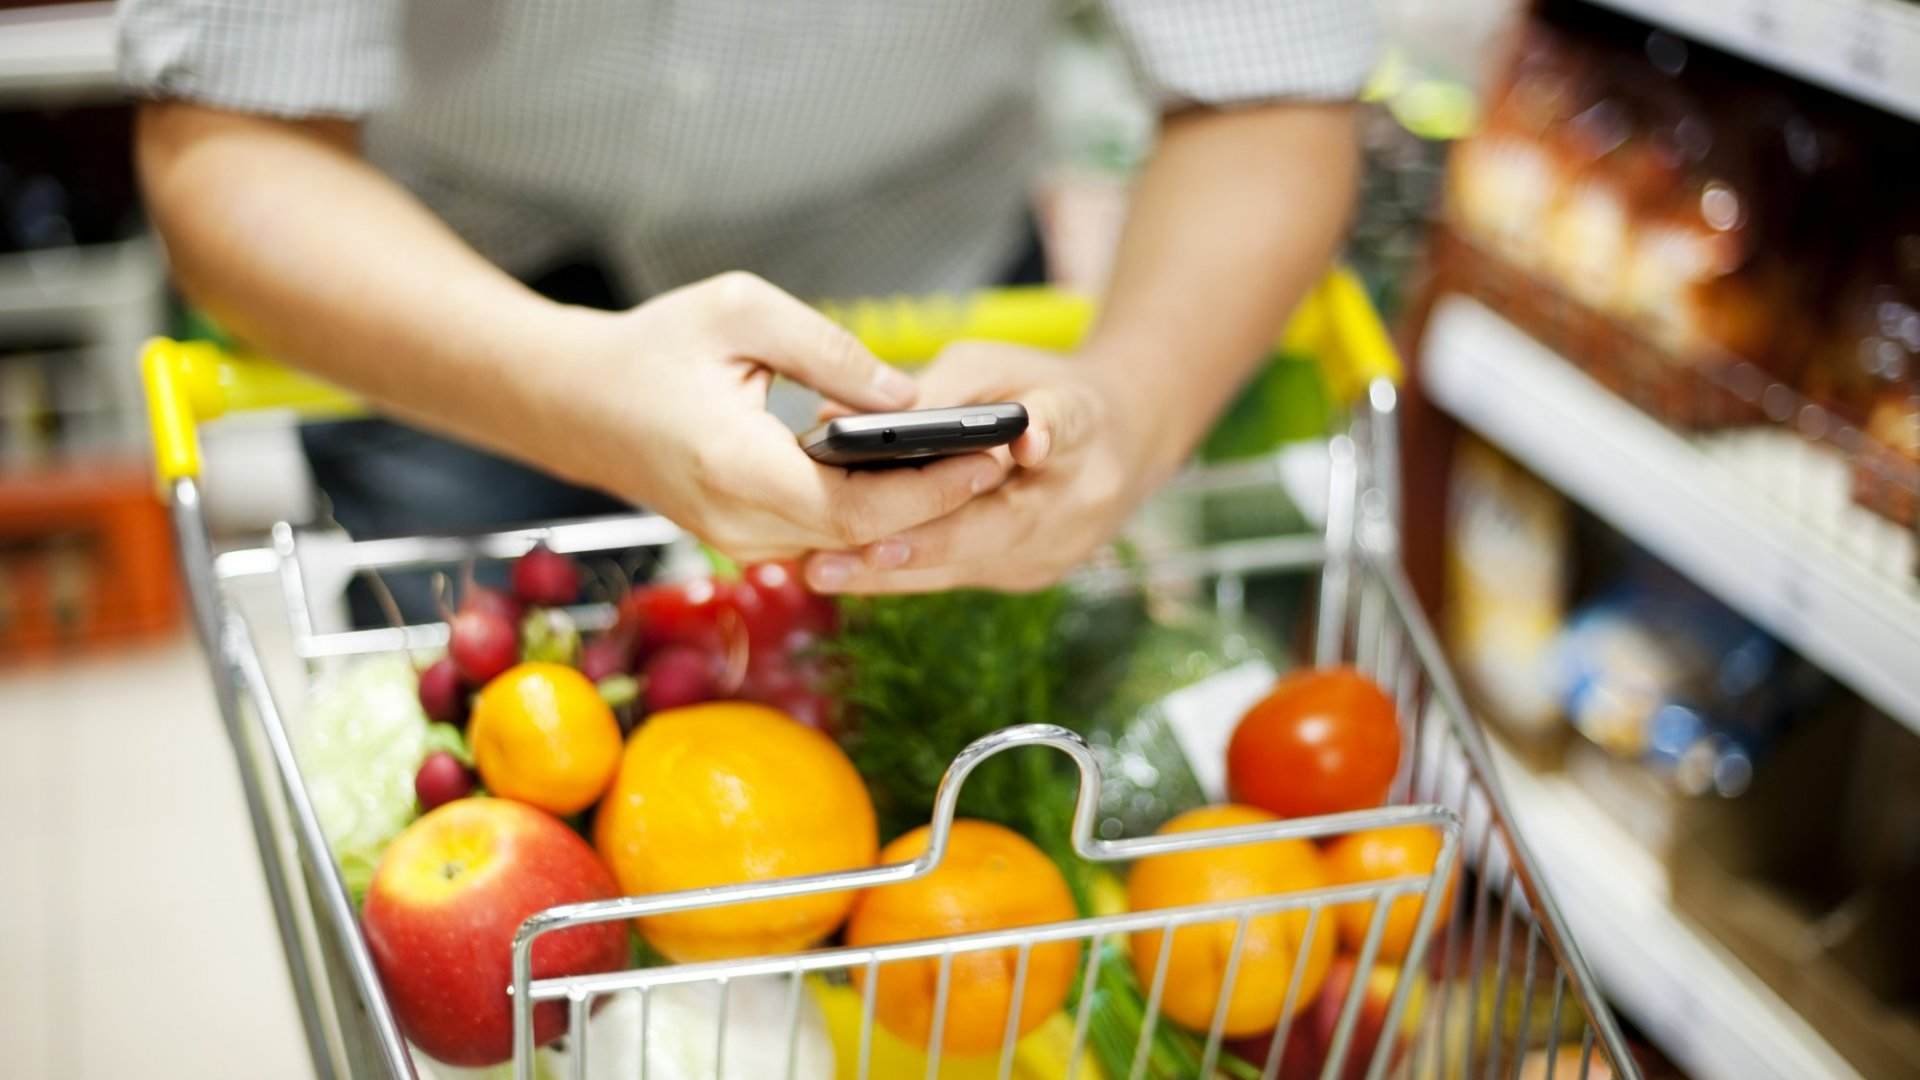 Study Shows More Grocery Store Customers are Being Influeced By Online Ads